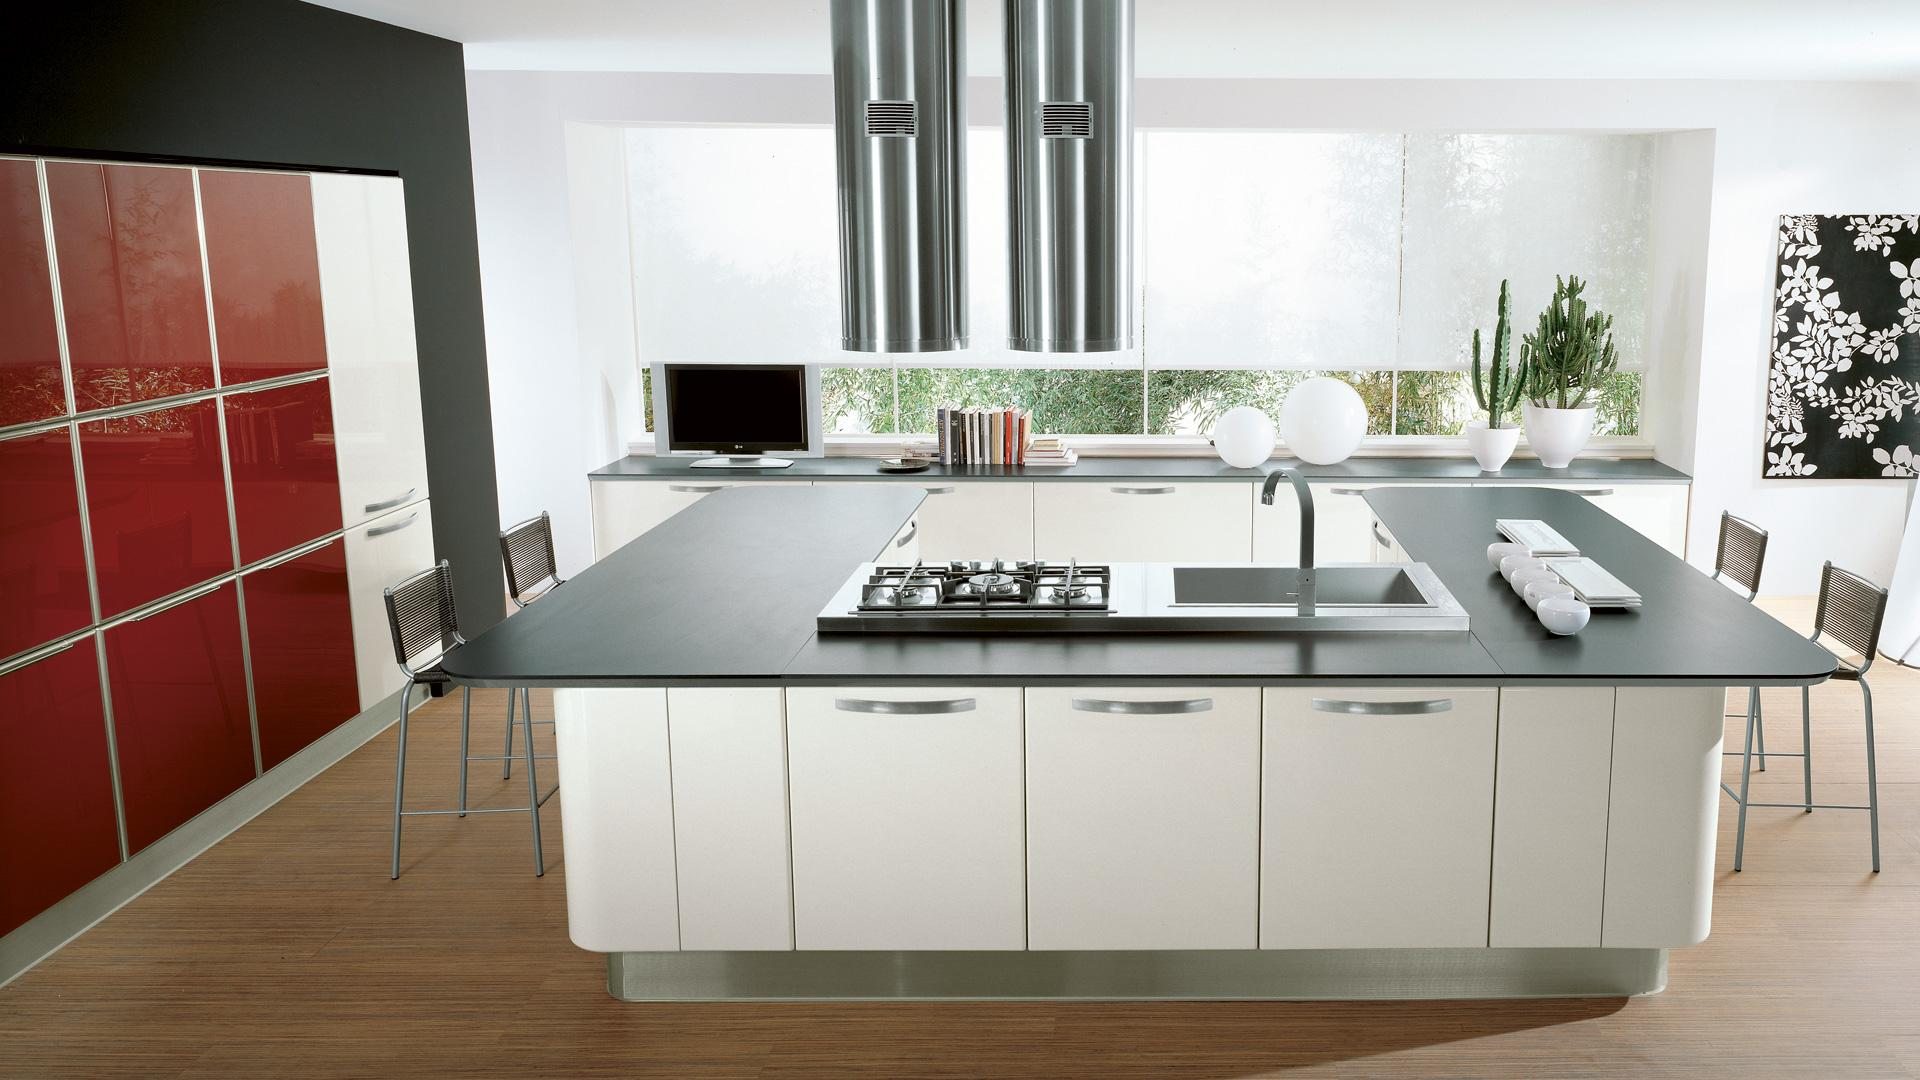 Dove Comprare La Cucina. Best Collage Cucina Beforeafter With Dove ...